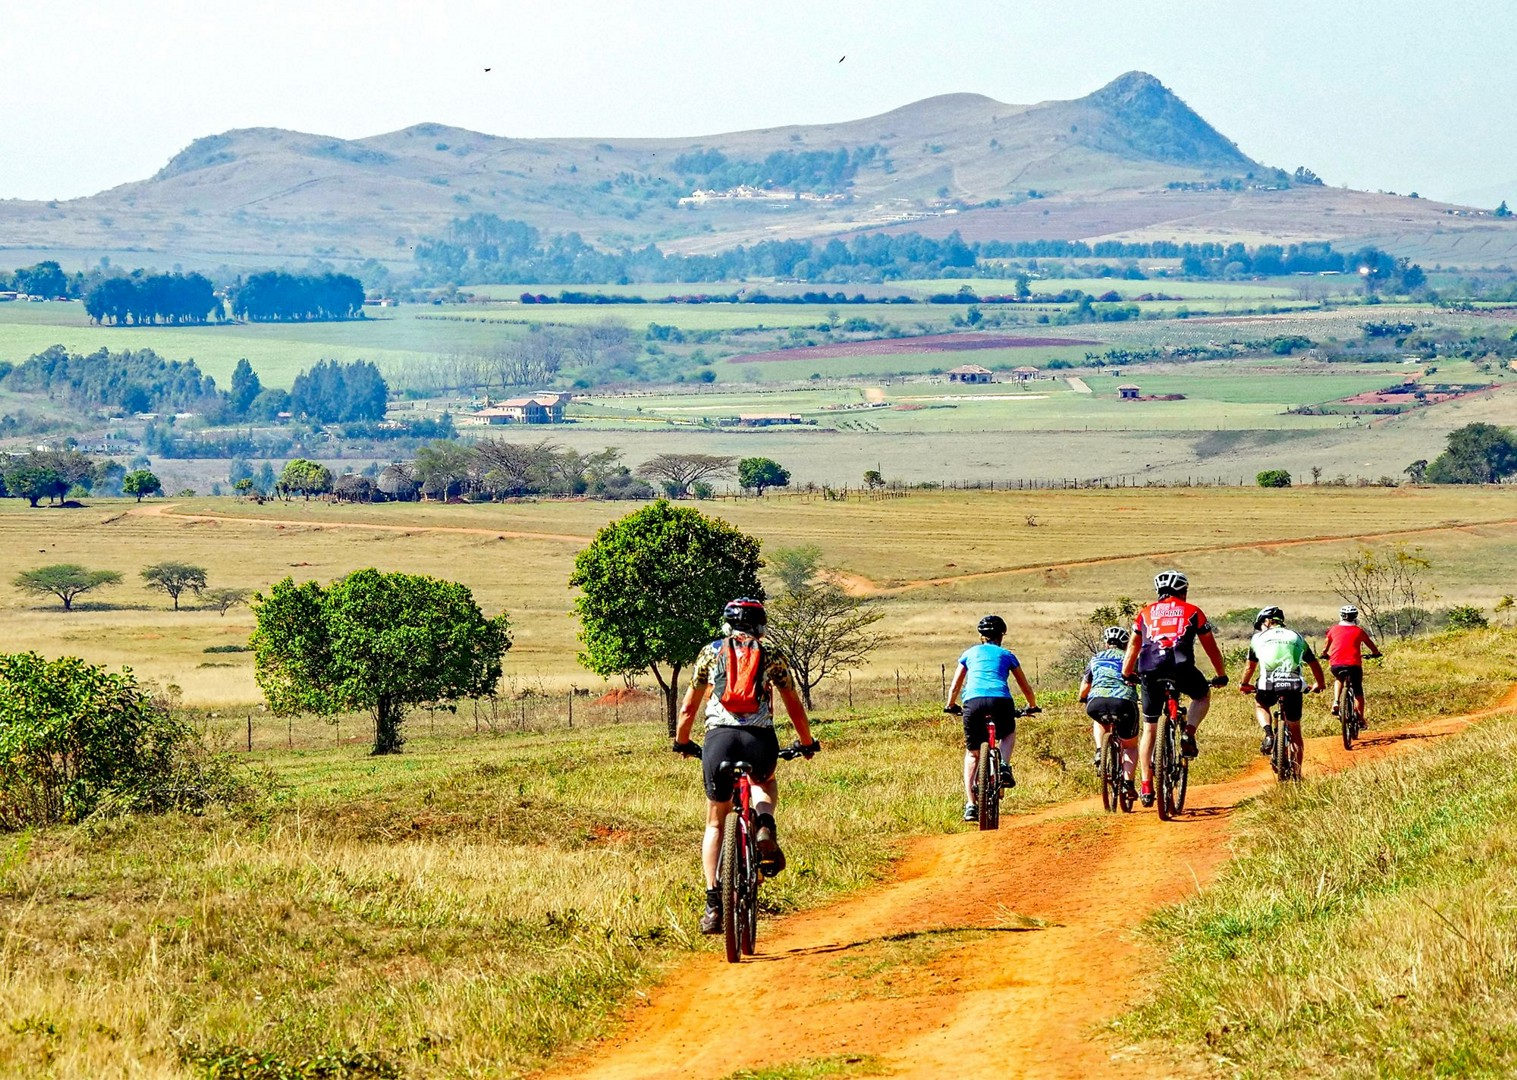 rgfdgfg4.jpg - Eswatini (Swaziland) - Cycling Safari - Cycling Adventures